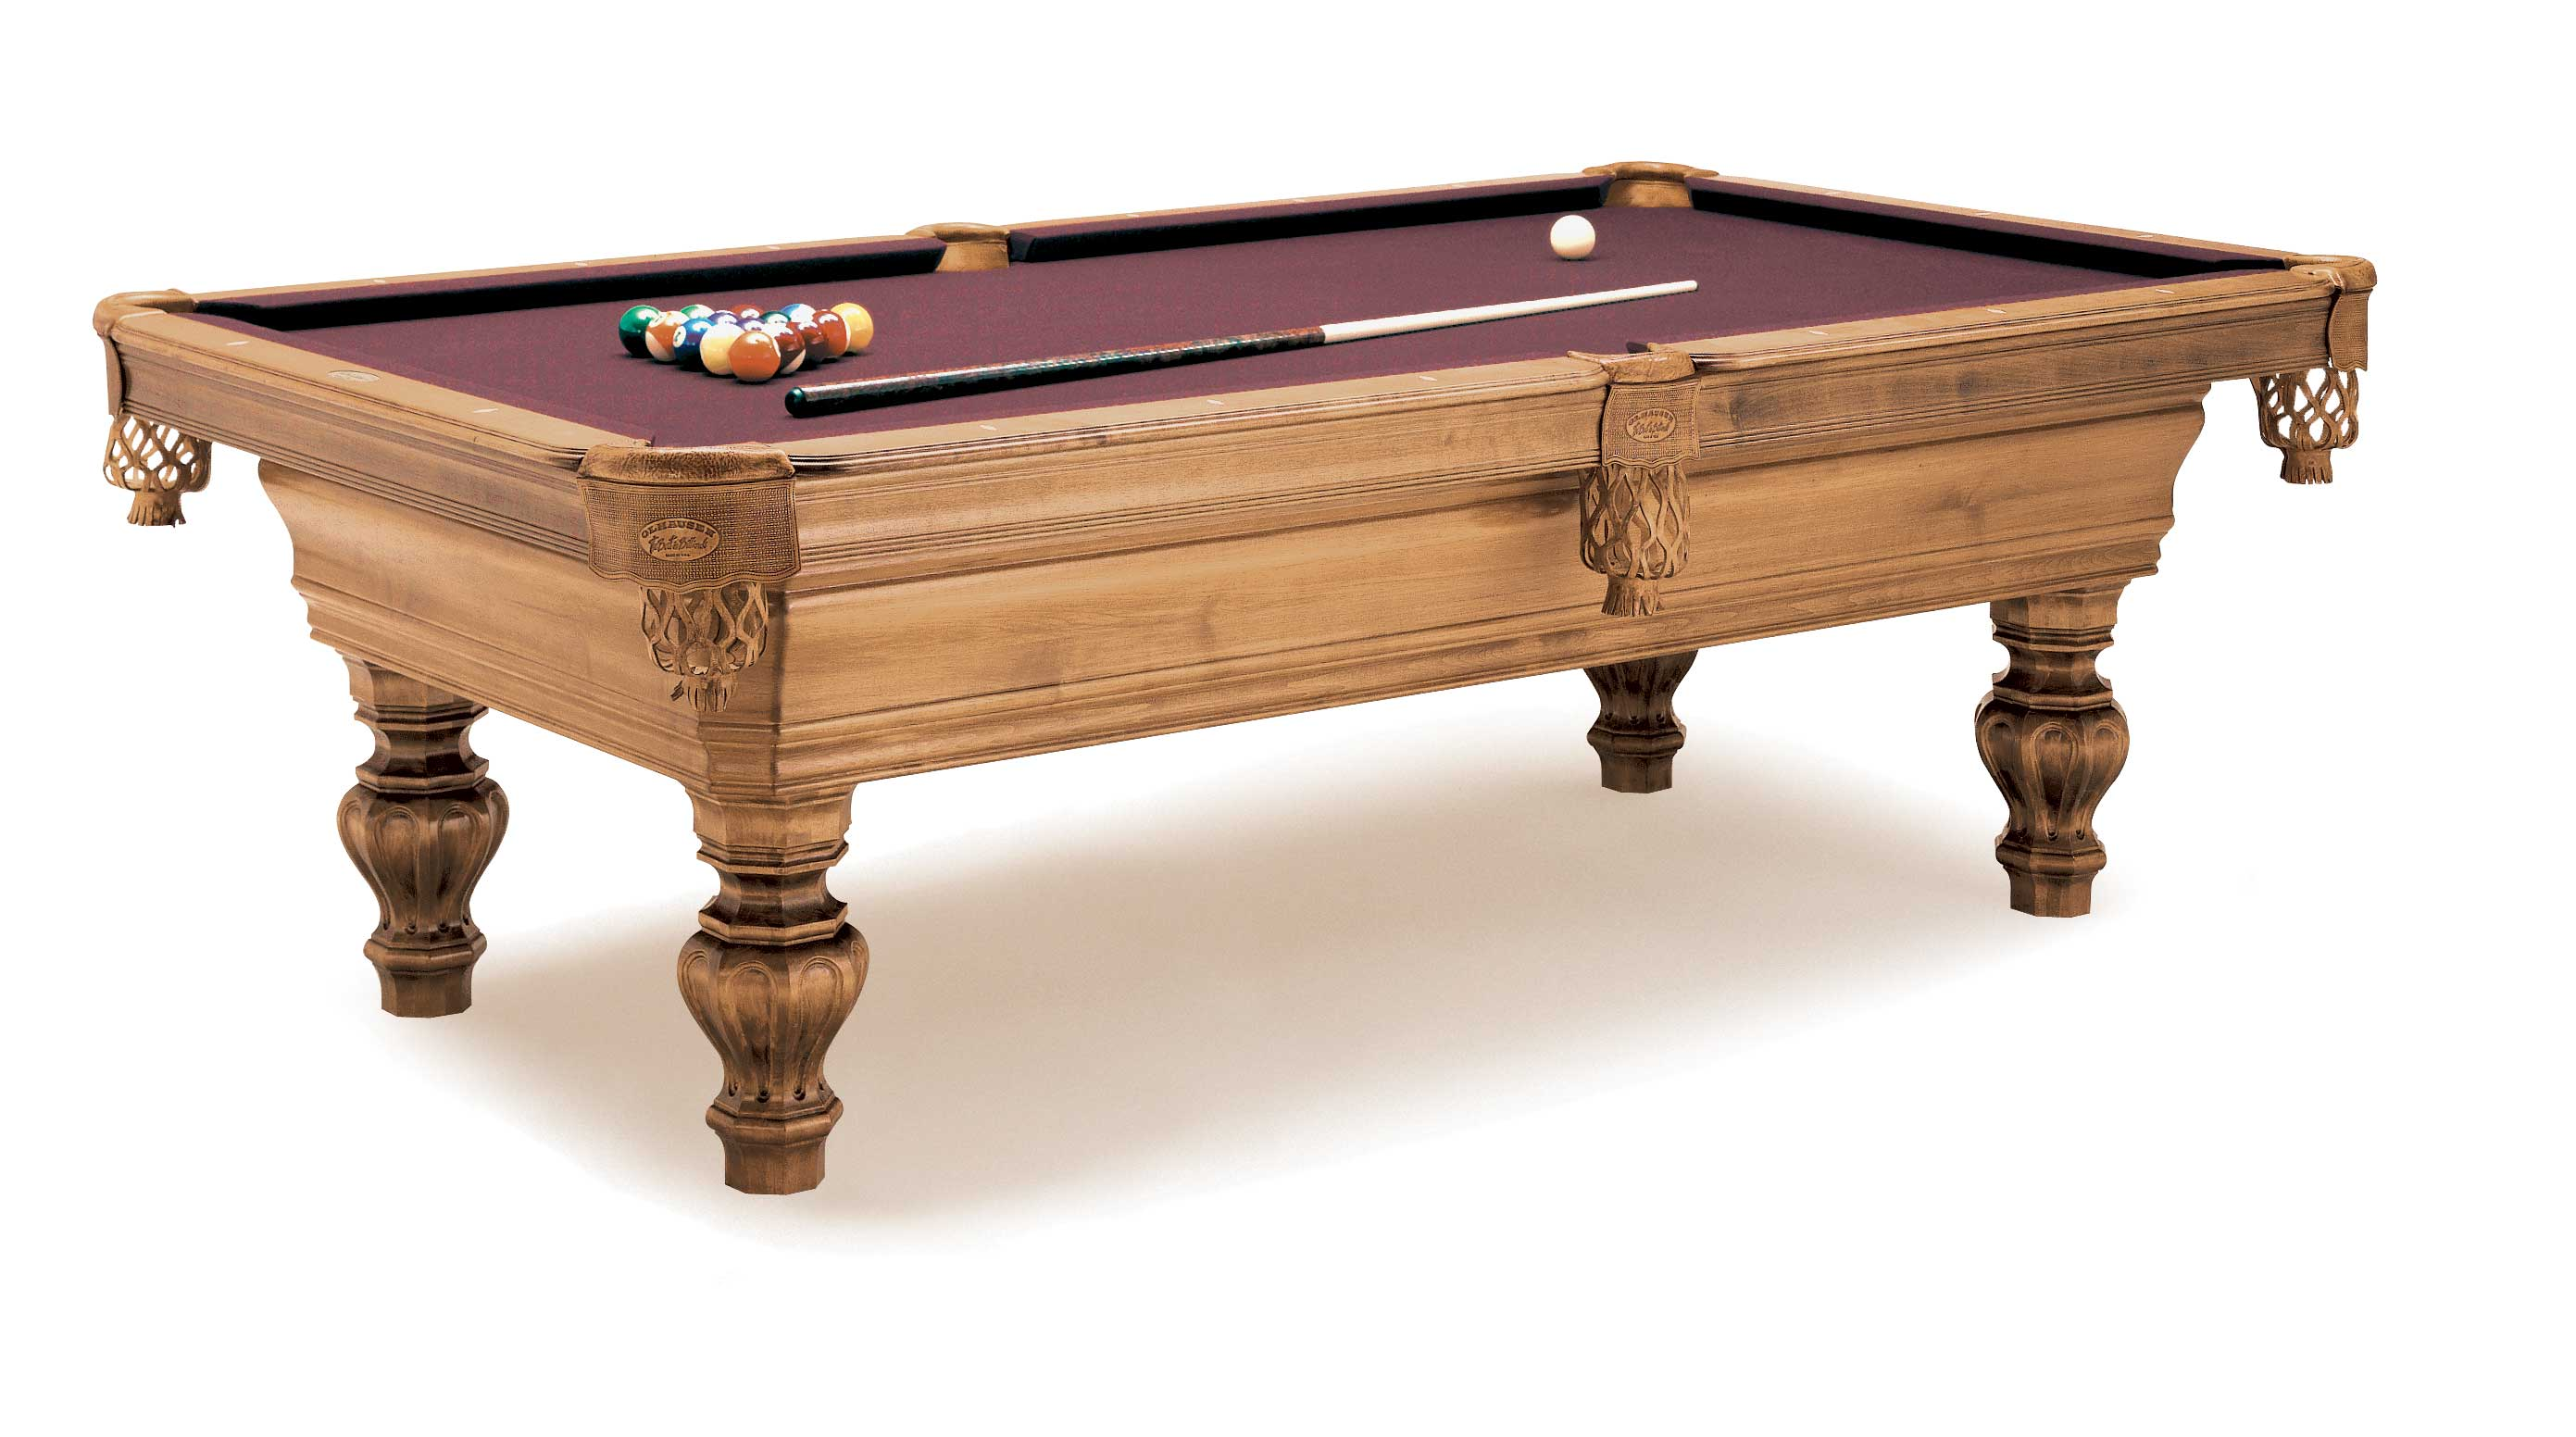 Olhausen Pool Tables For Sale New Jersey Billiards Pool Table NJ - Pool table movers new orleans